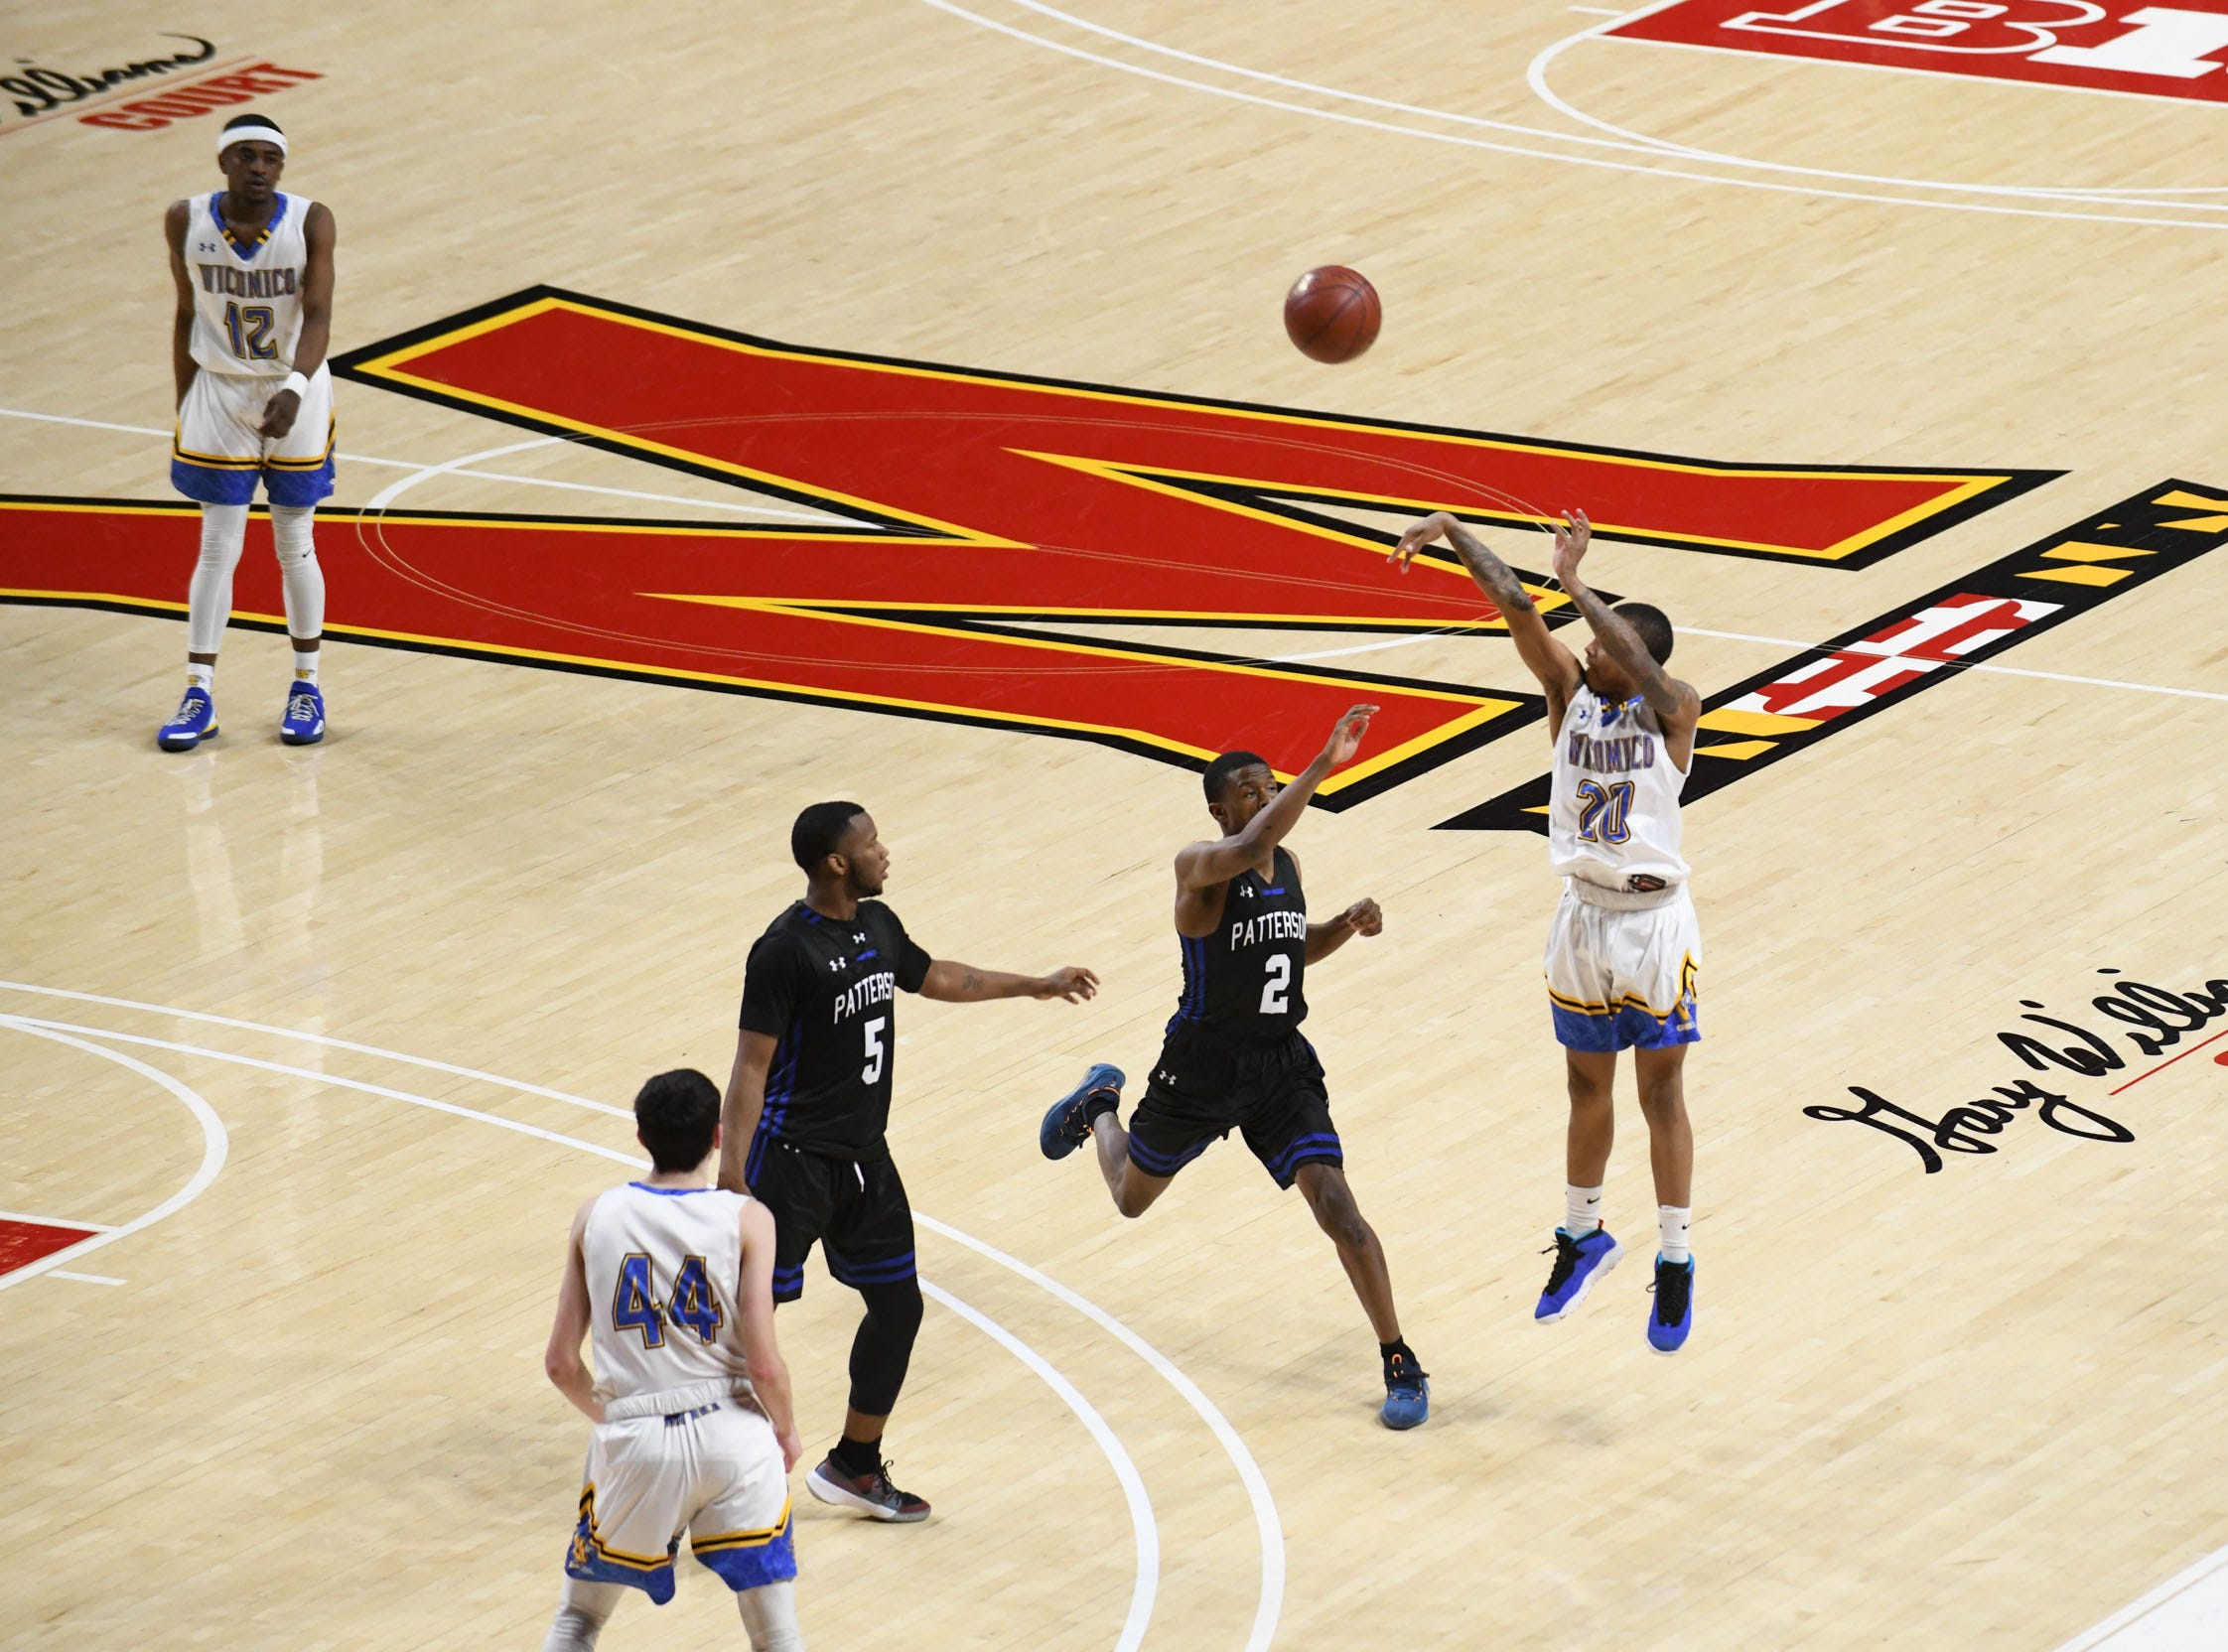 Wi-Hi's Dorian Stevens with the long 3-point shot against Patterson High School during the MPSSA 2A boys state championship on Saturday, March 16, 2019 at The Xfinity Center in College Park, Md.